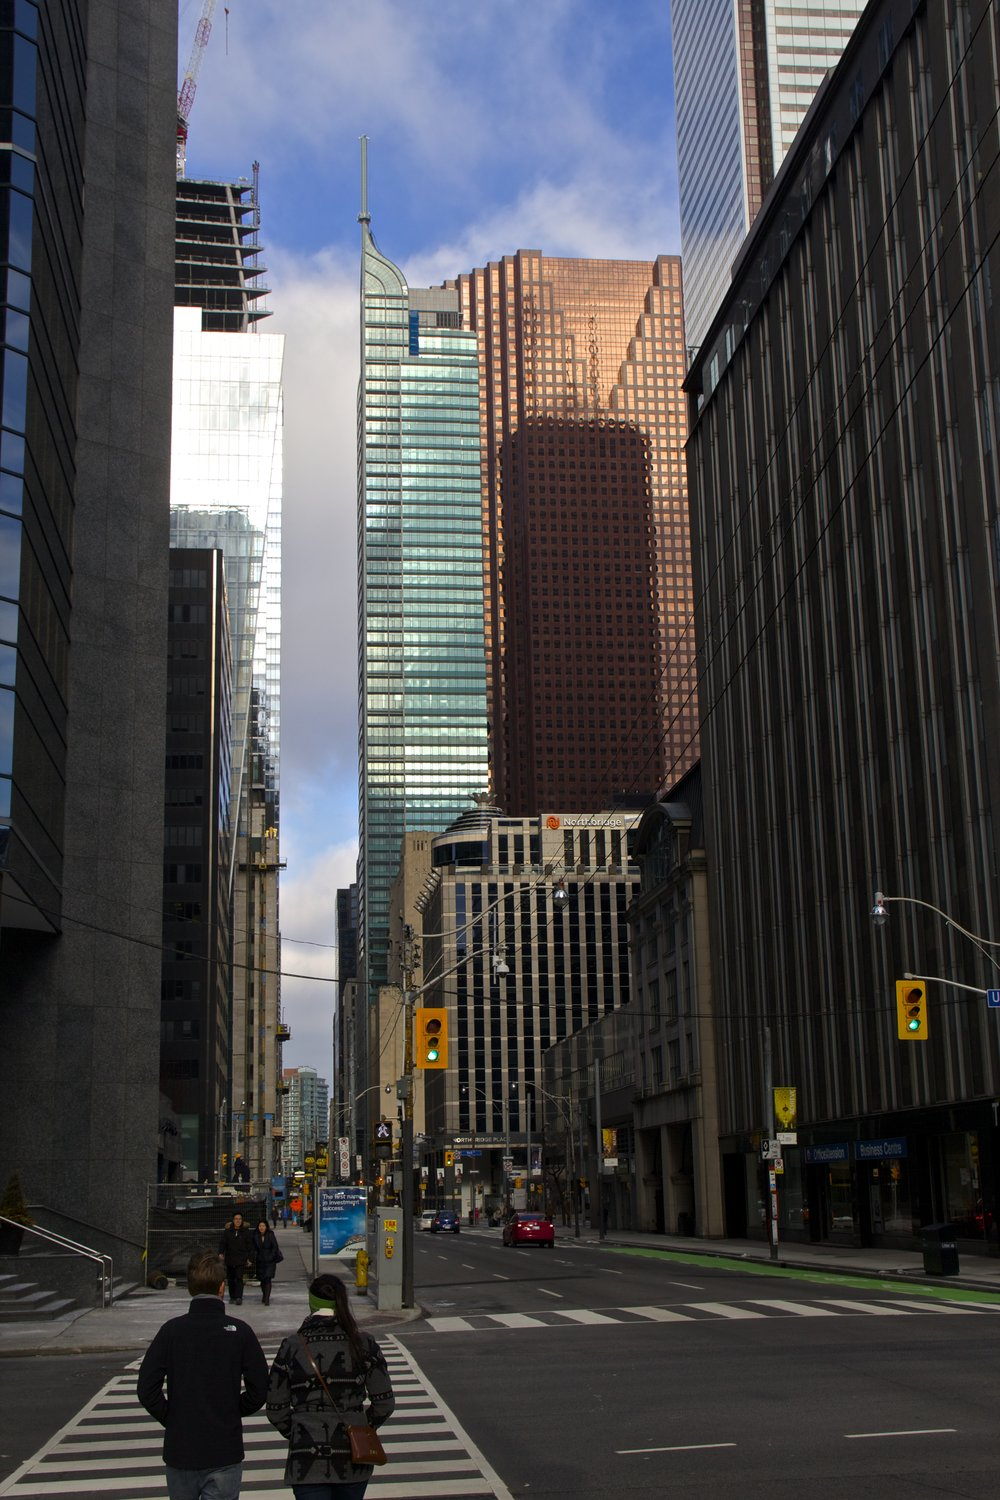 toronto downtown financial district 7.jpg